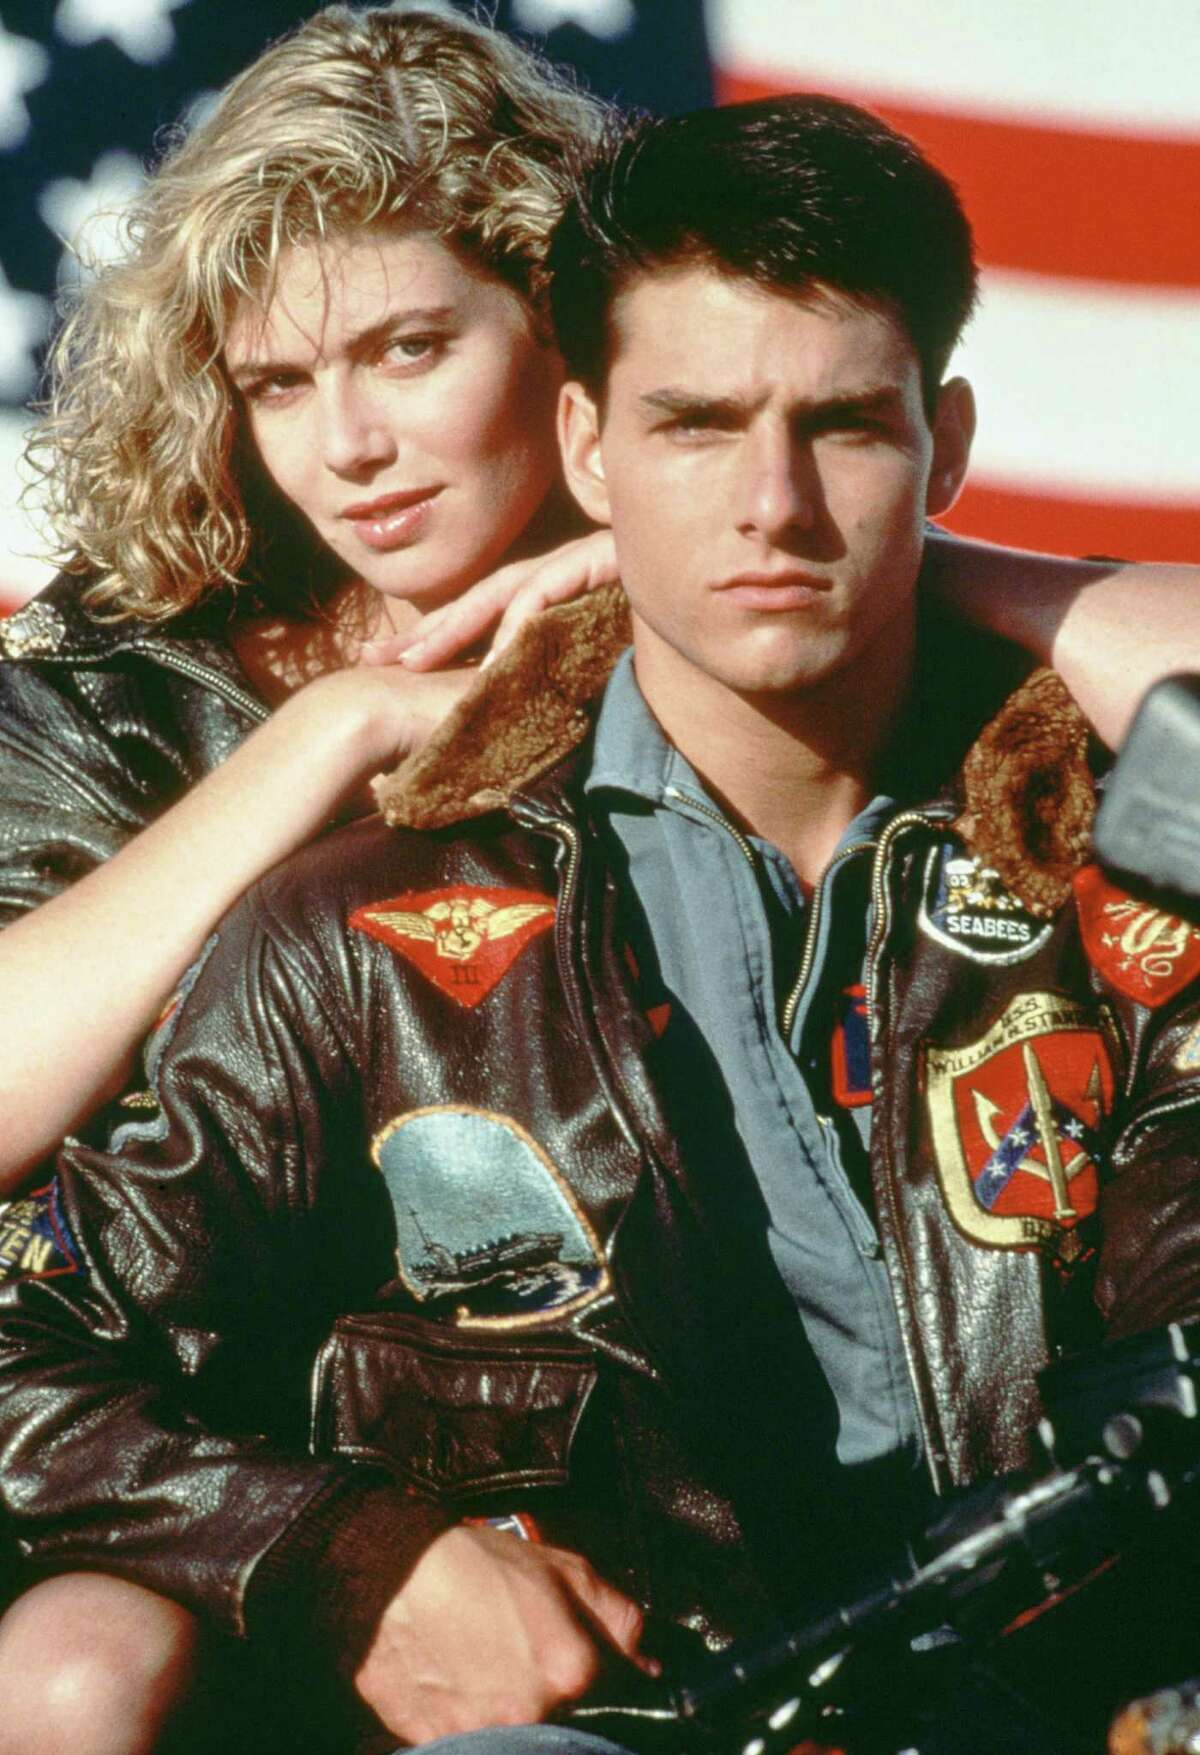 """""""Top Gun"""" was the highest-grossing film in 1986, having raked in more than $353 million worldwide.The Cold War-era action flick is said to have increased interest in U.S. naval aviation by 500 percent after its release."""